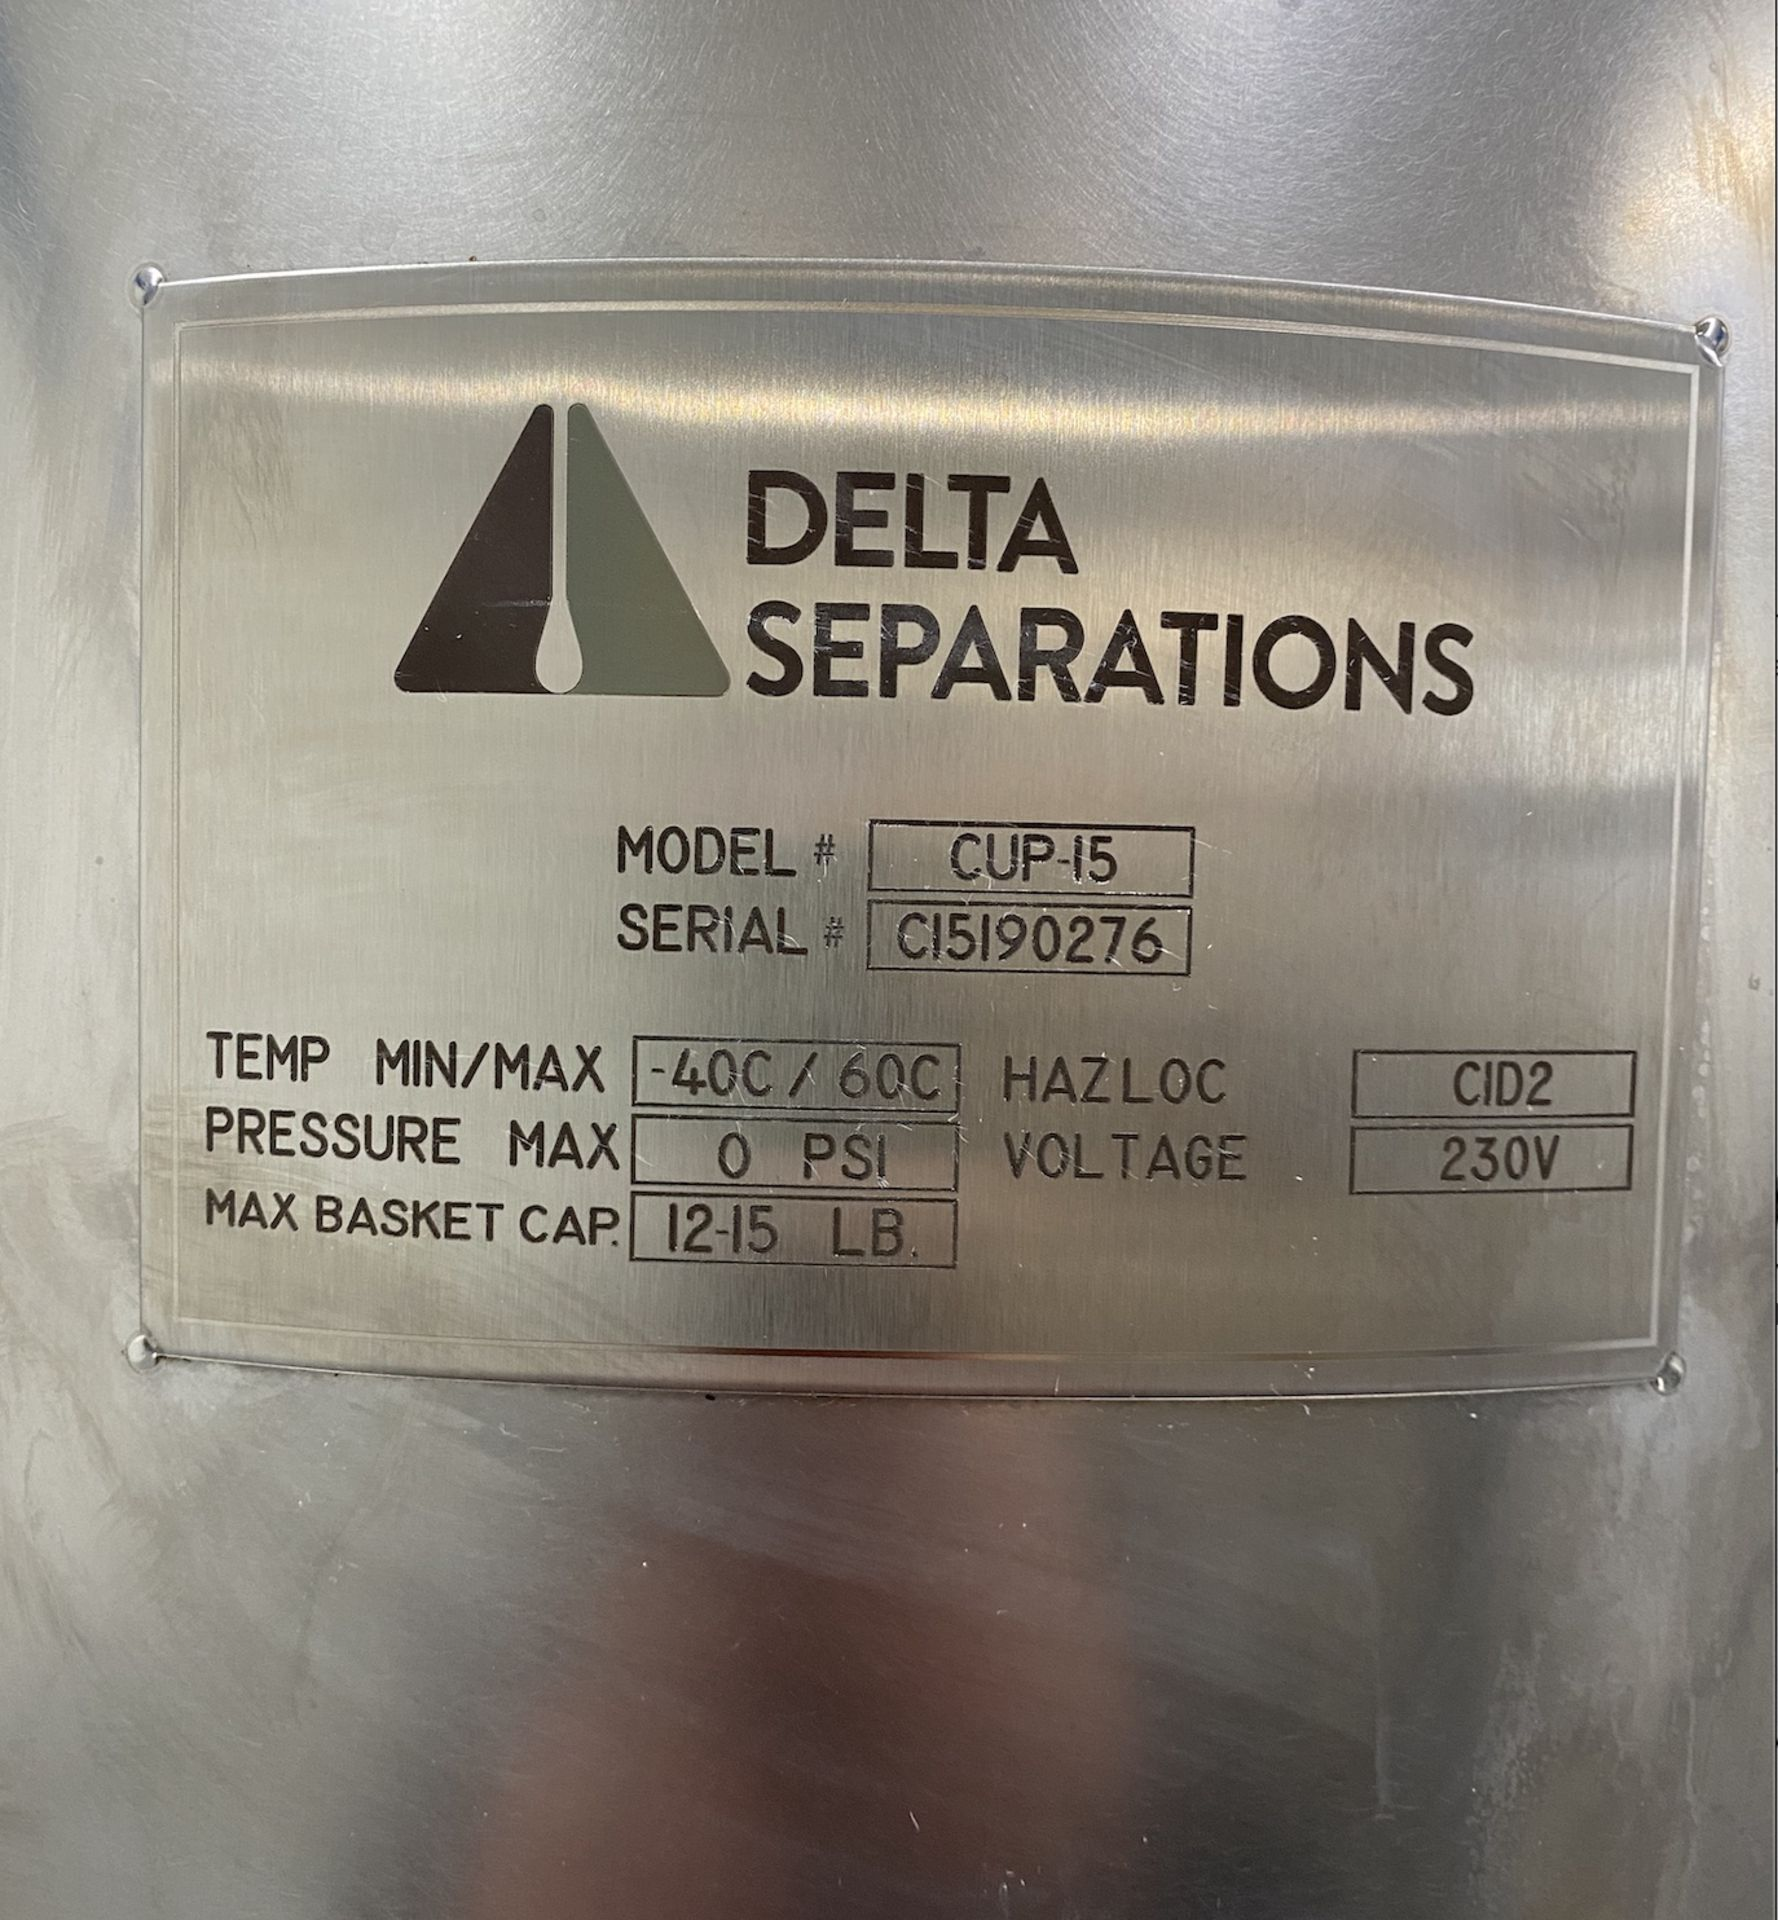 Used- Delta Separations CUP-15 Ethanol Alcohol Extraction System, Capacity: 8-14 lbs per Batch - Image 4 of 5